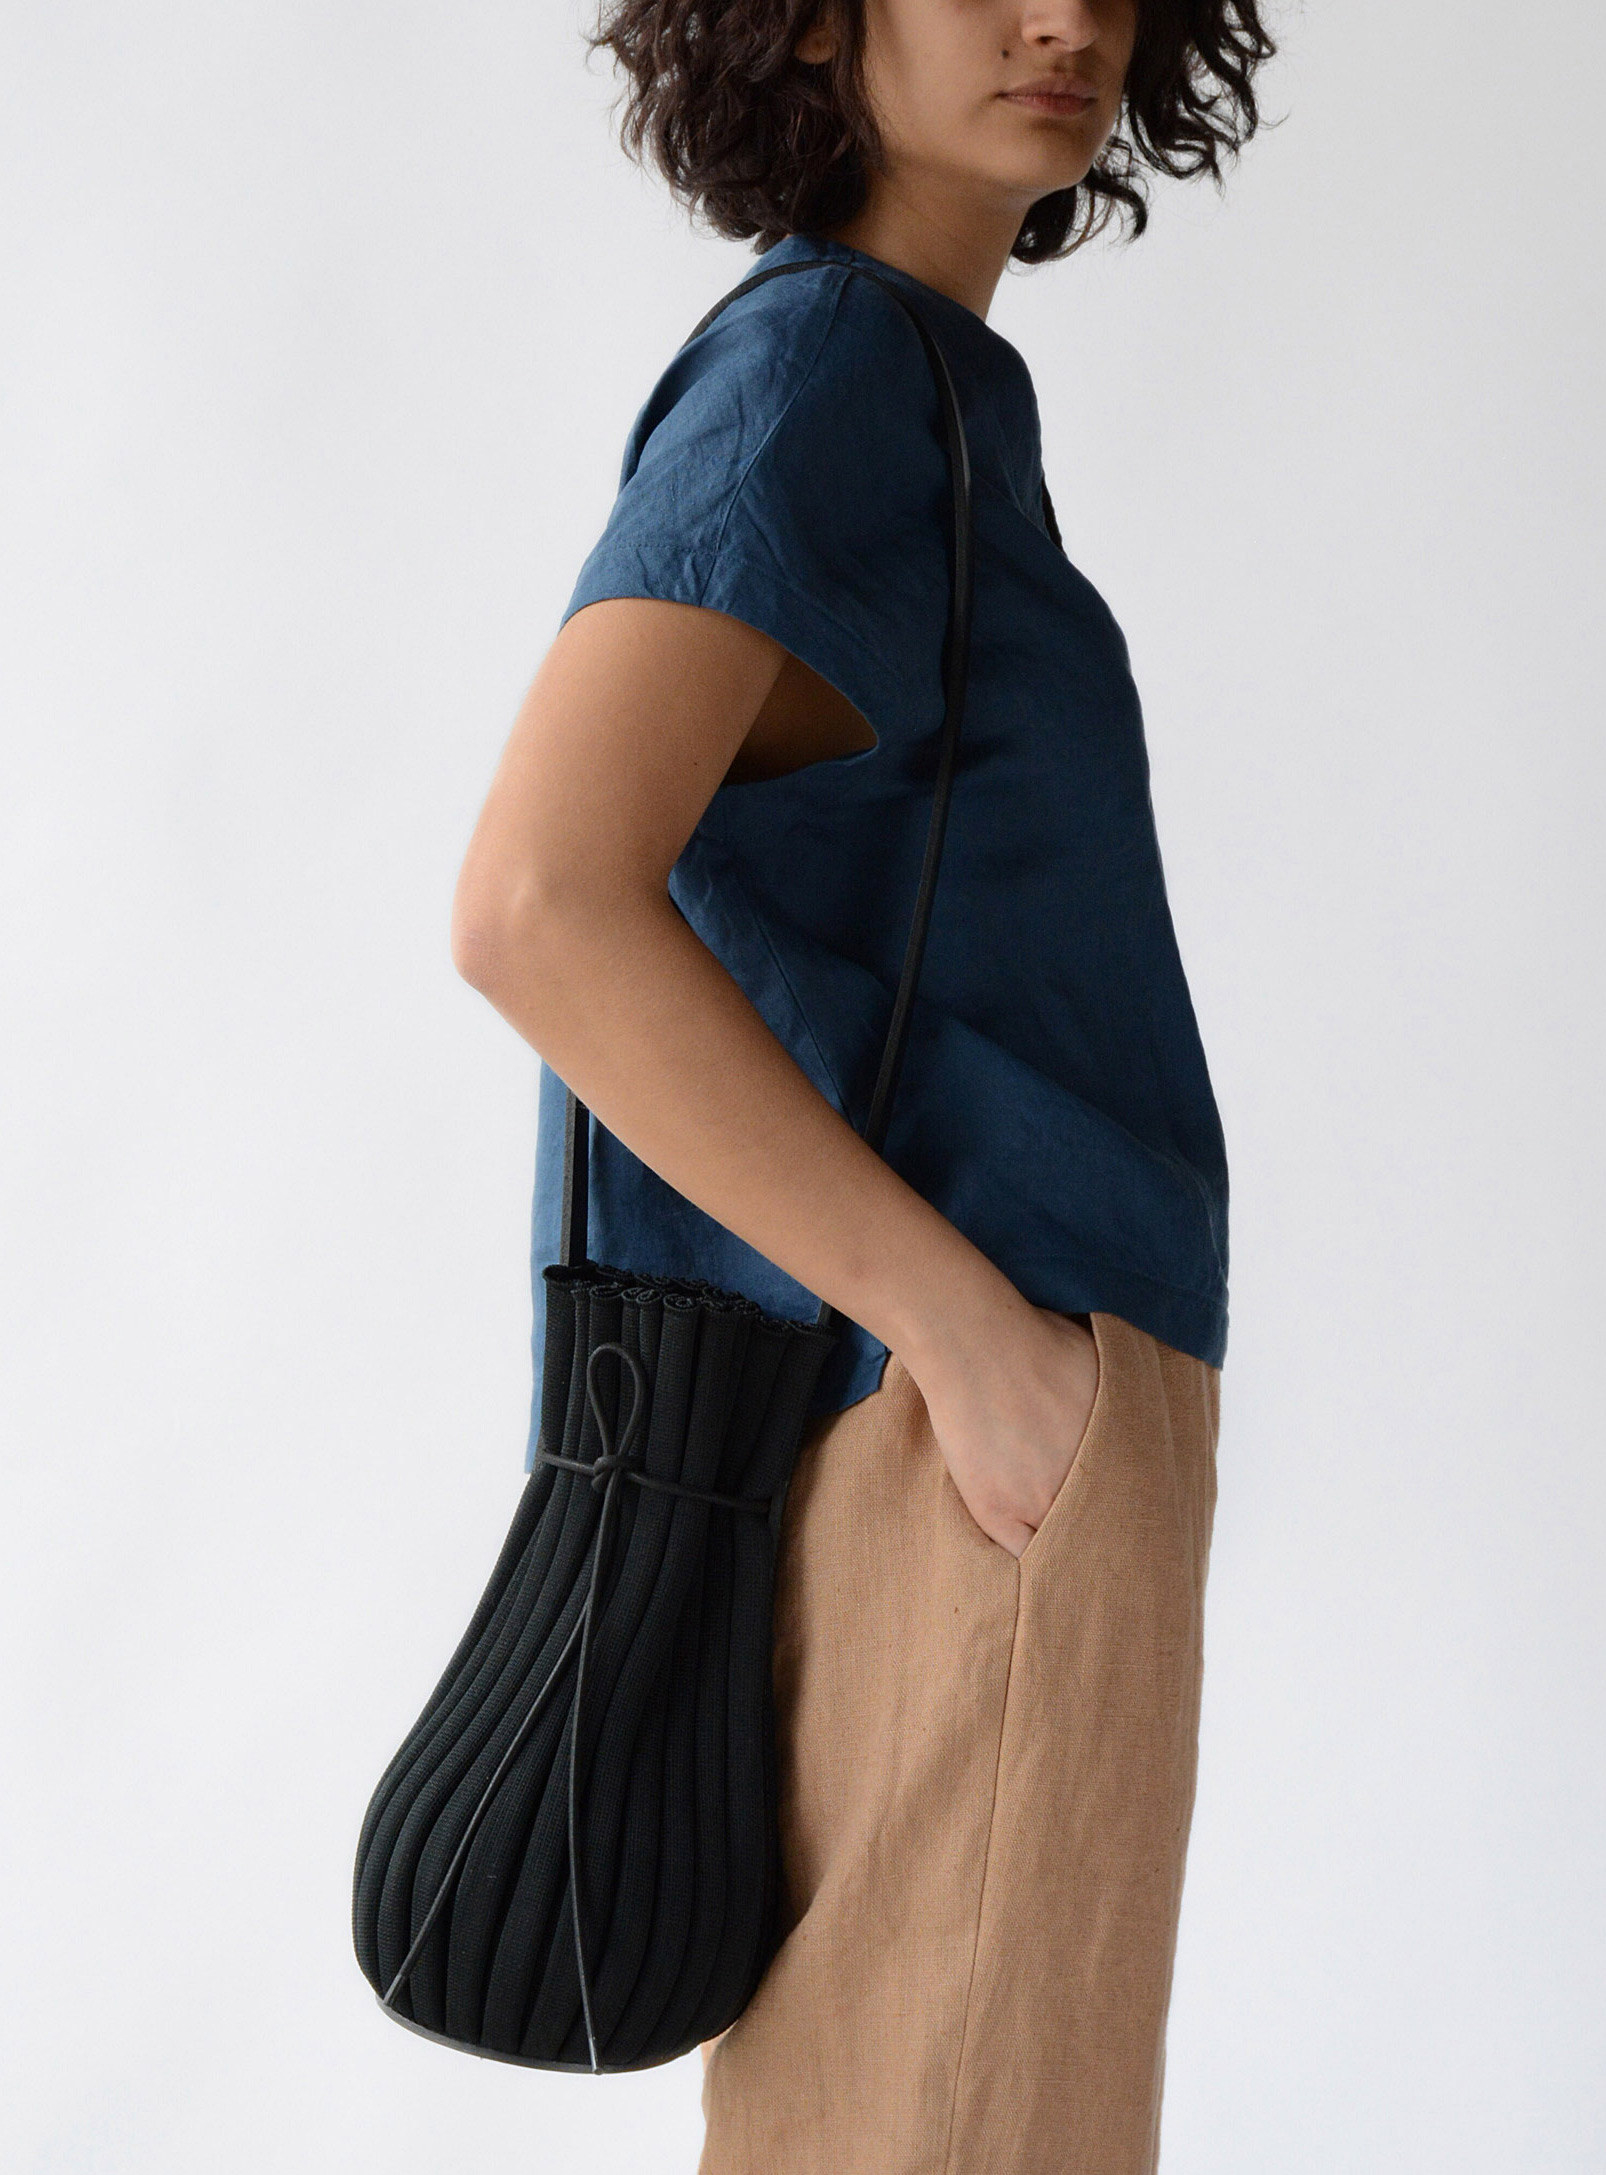 person wearing the bag